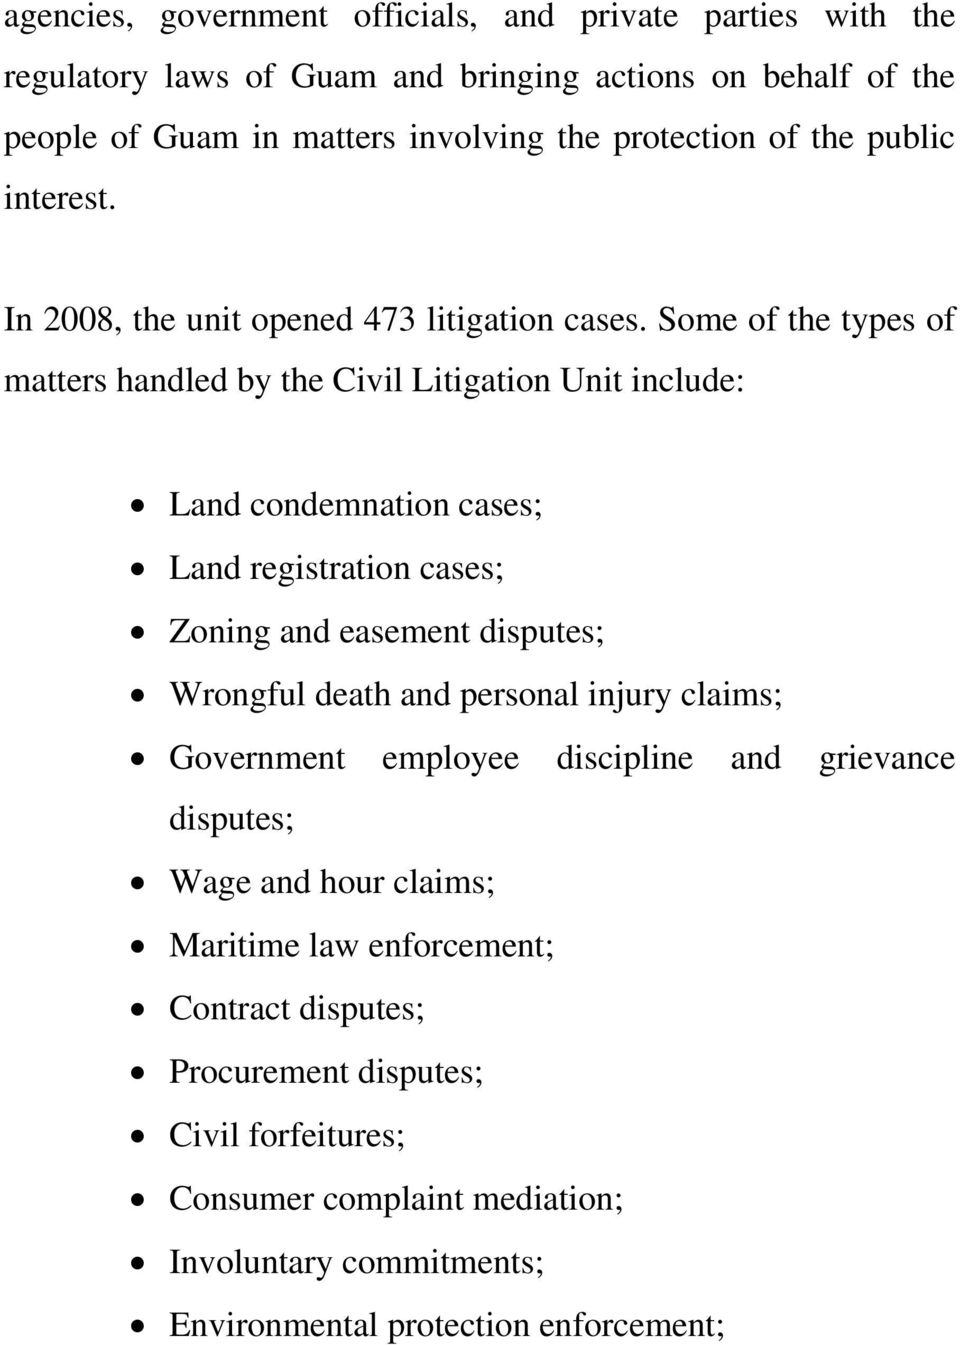 Some of the types of matters handled by the Civil Litigation Unit include: Land condemnation cases; Land registration cases; Zoning and easement disputes; Wrongful death and